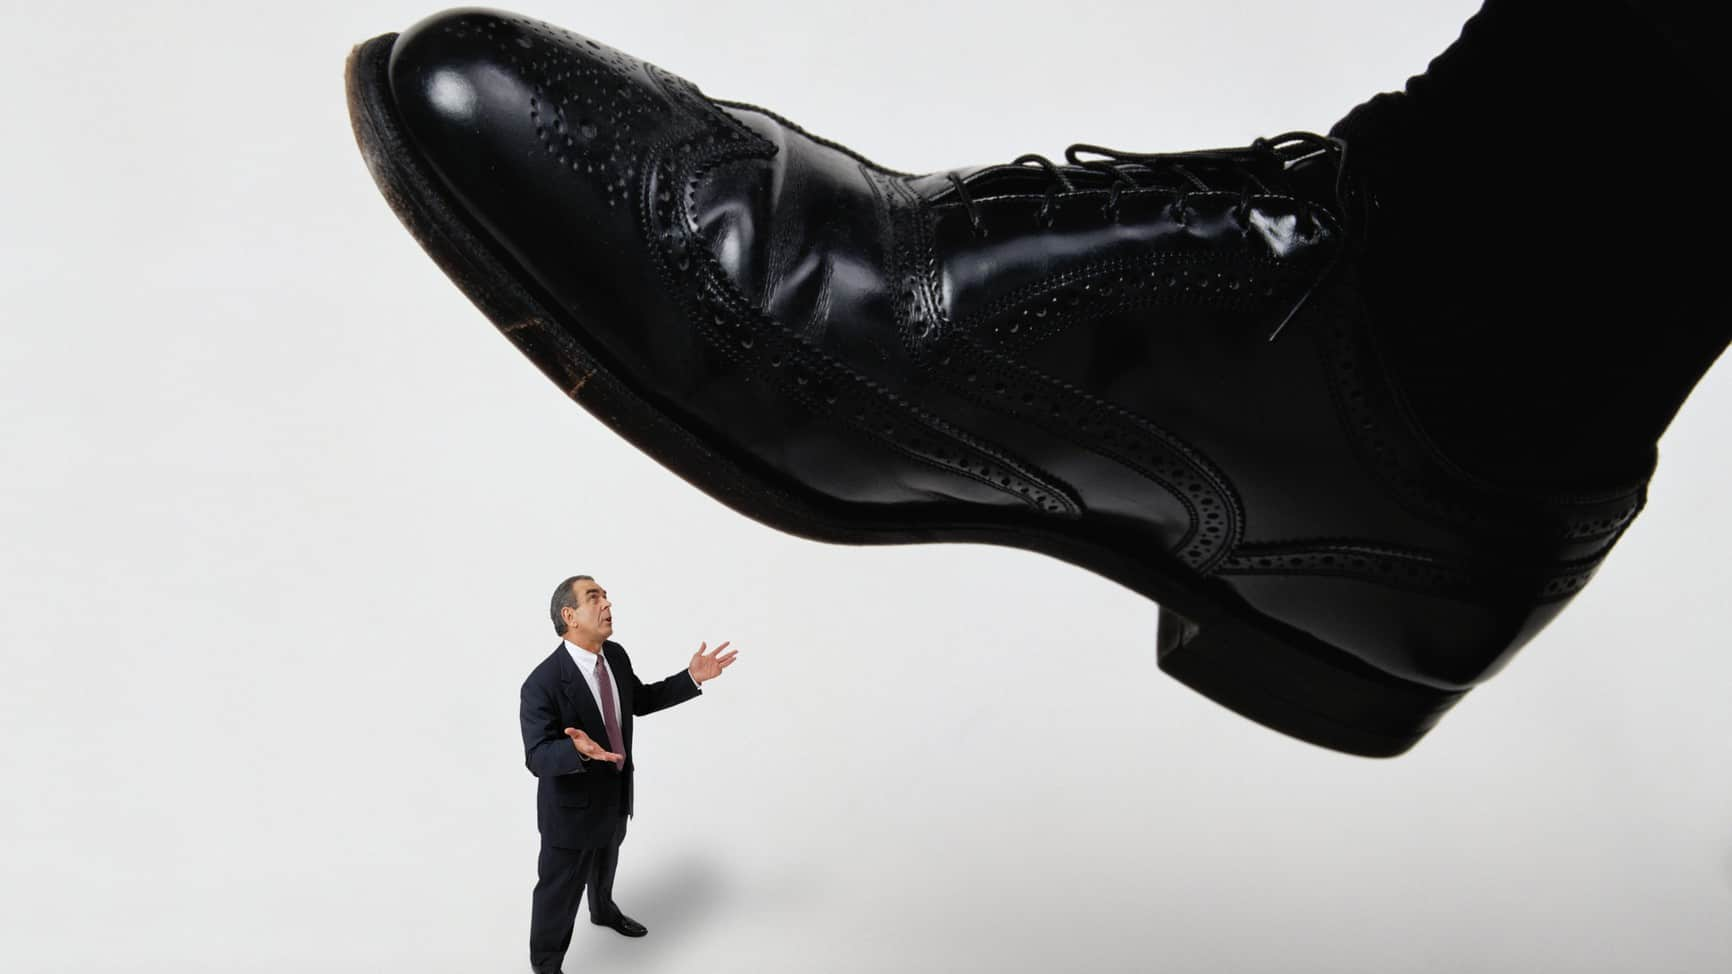 virgin ceo steps down represented by giant shoe about to step on reluctant miniature business man